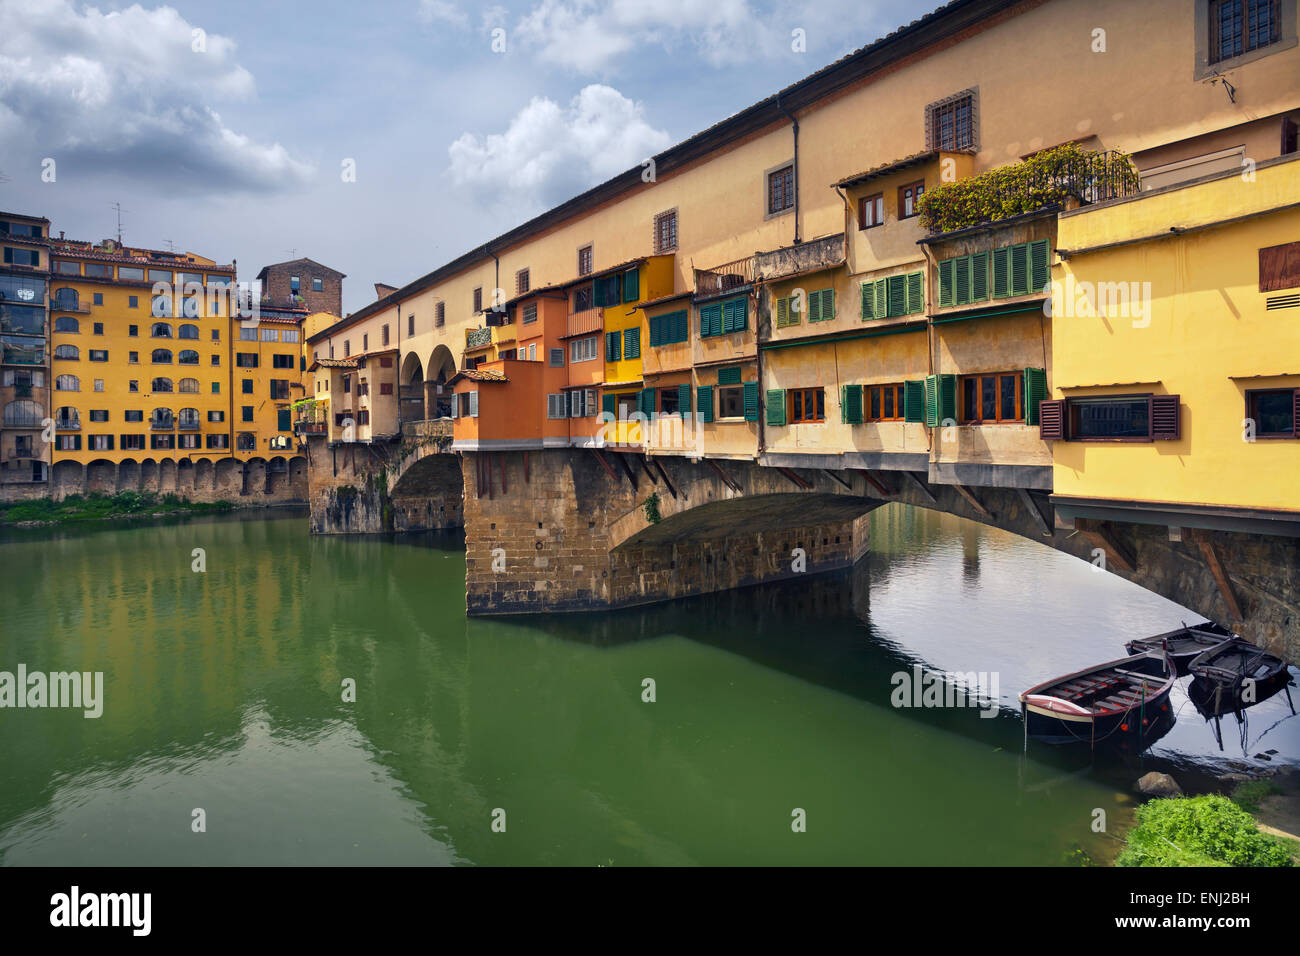 Florence. Image of Ponte Vecchio in Florence, Italy during spring day. - Stock Image